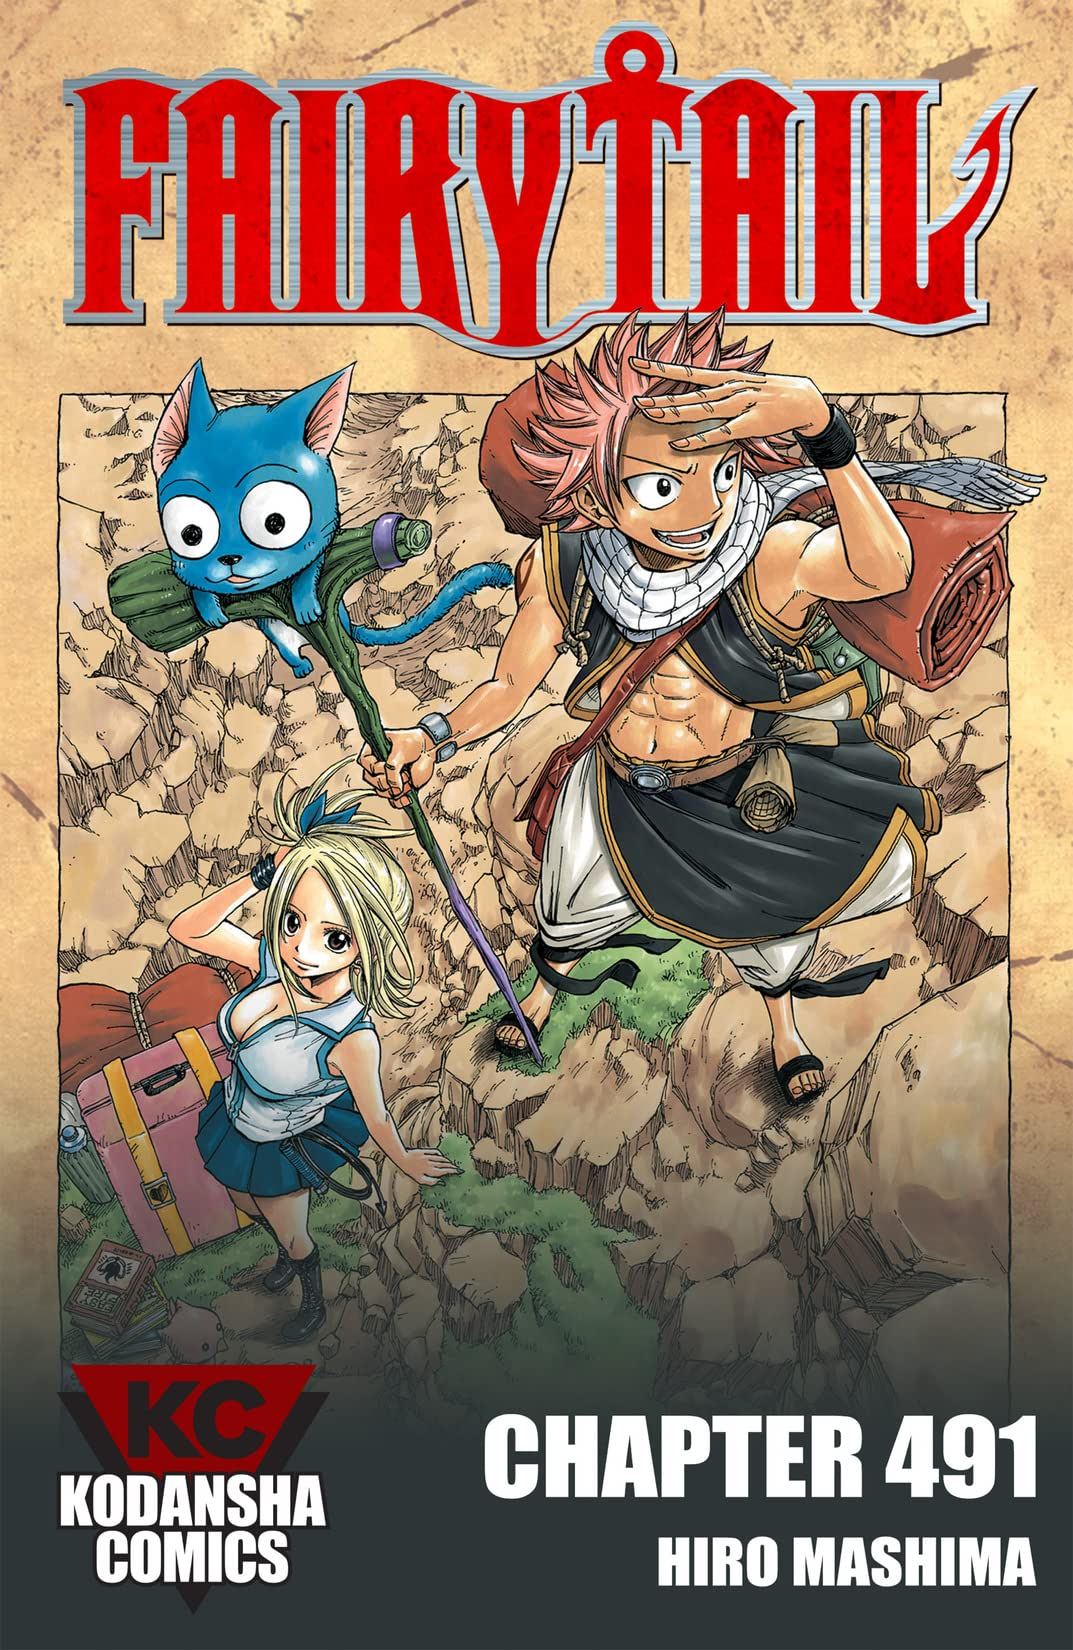 Fairy Tail #491